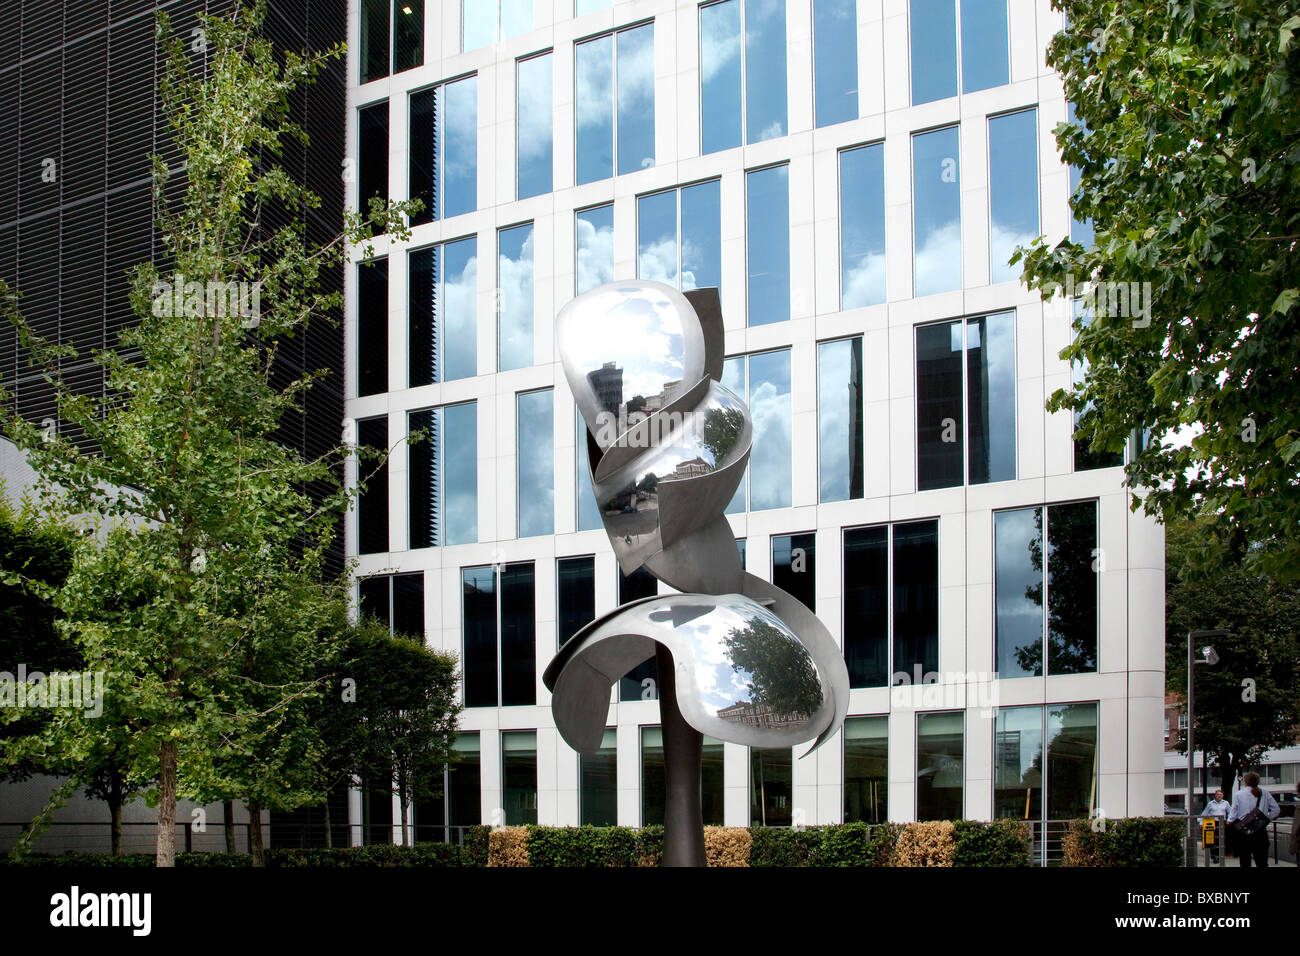 Drill sculpture in front of the headquarters of the mining company Rio Tinto in London, England, United Kingdom, - Stock Image